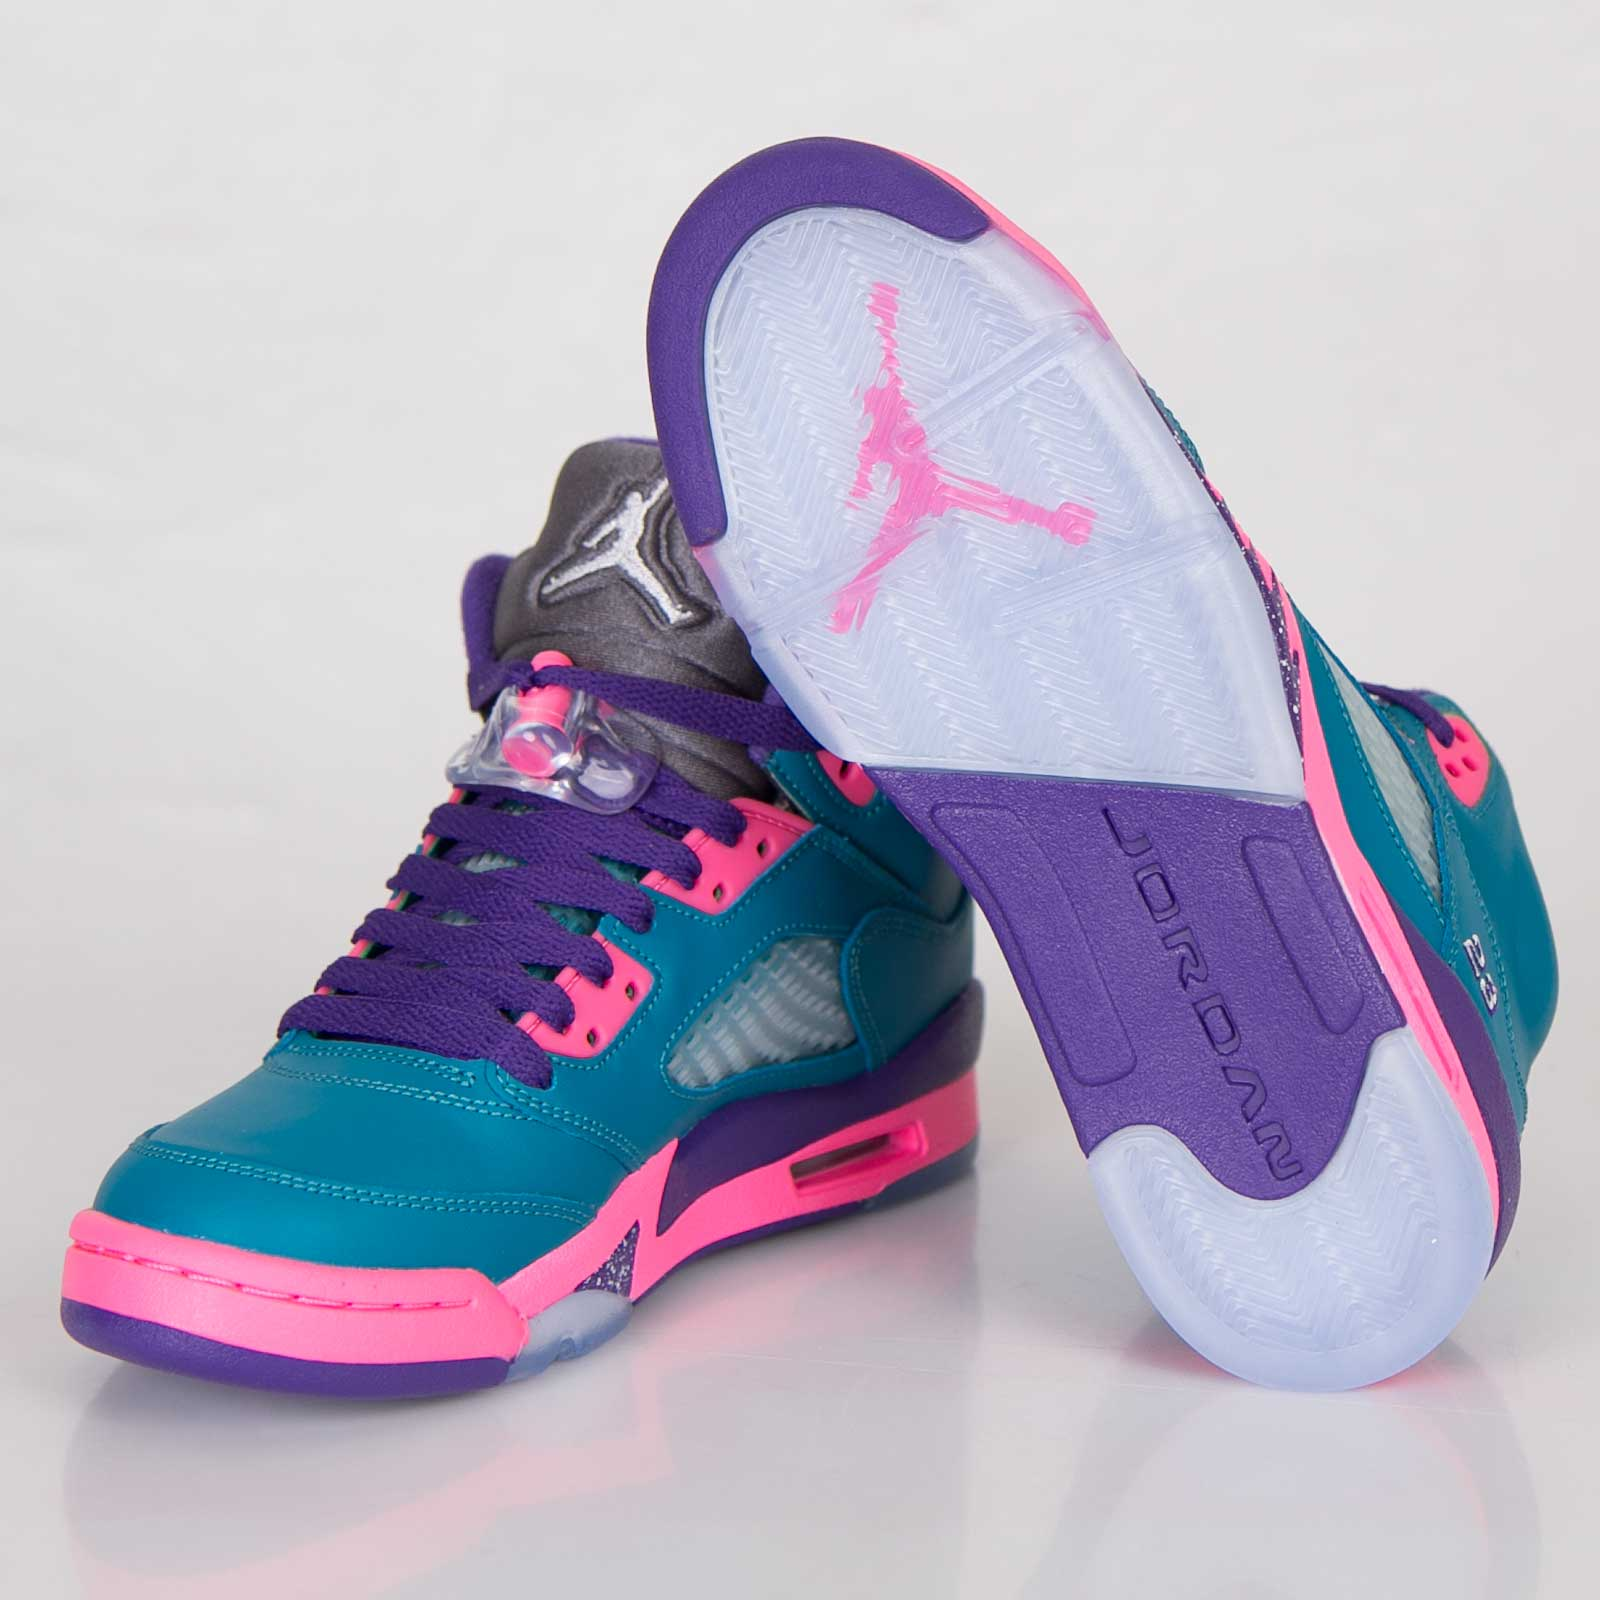 a15e97dd904 Jordan Brand Girls Air Jordan 5 Retro (GS) - 440892-307 ...